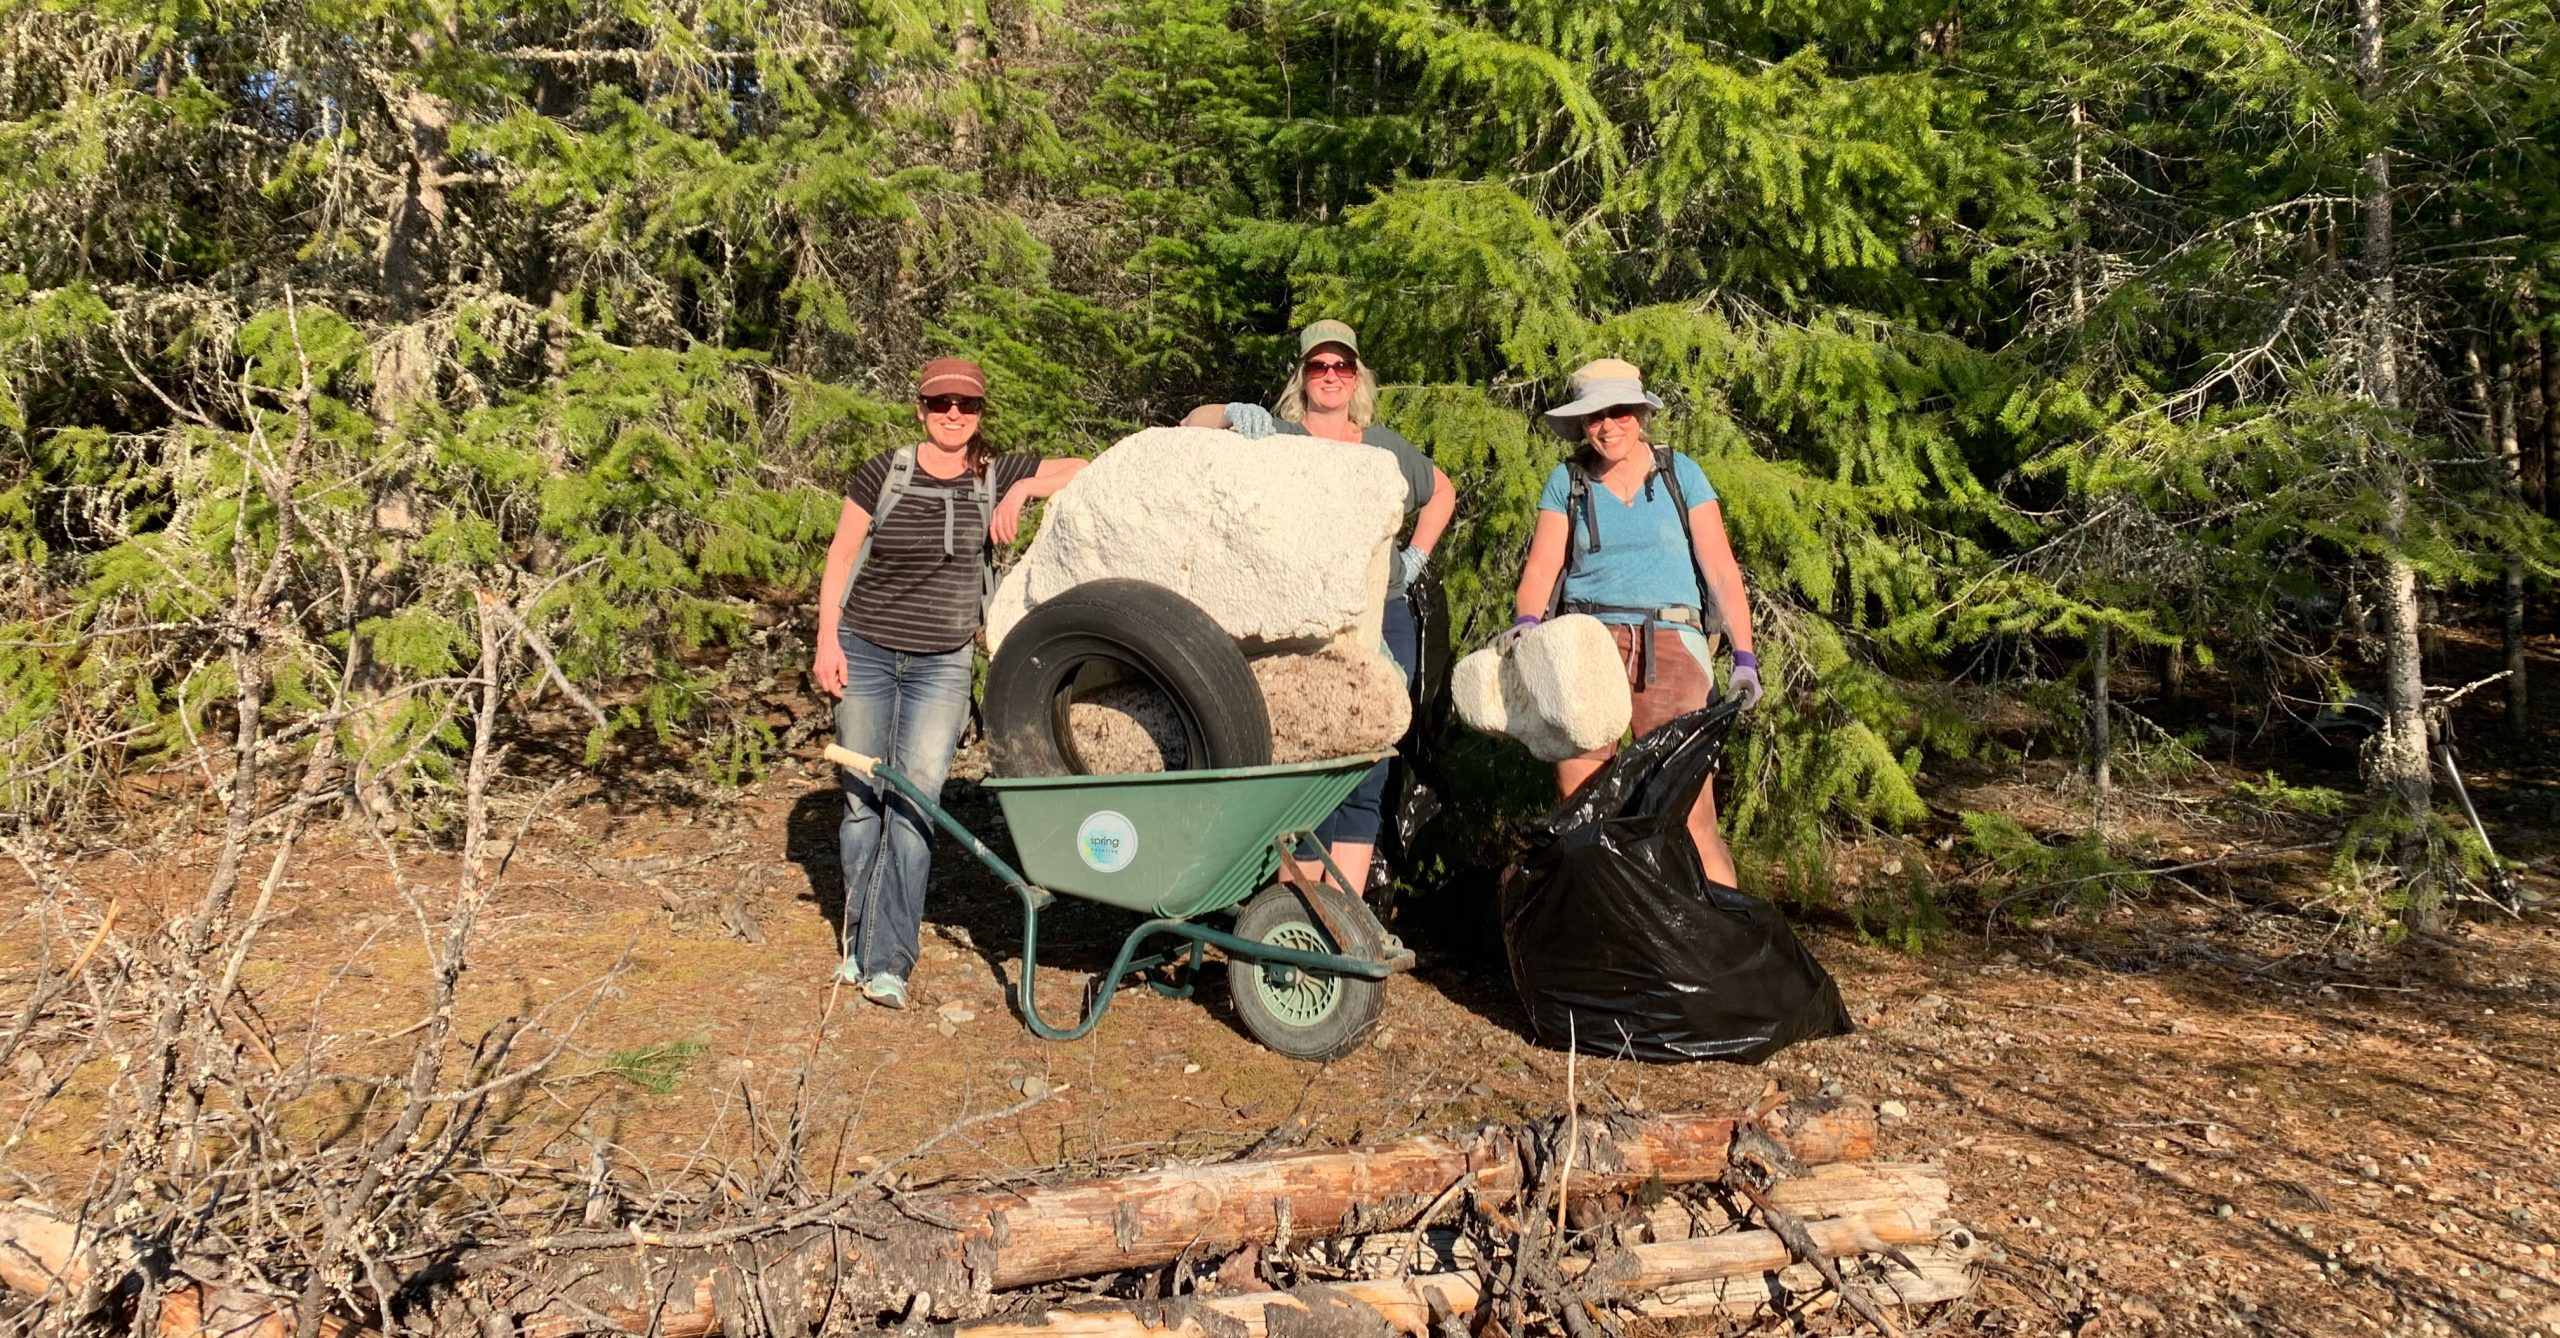 Earth-Day-2021-Beach-Cleanup-Spring-Creative-Kootenay-River